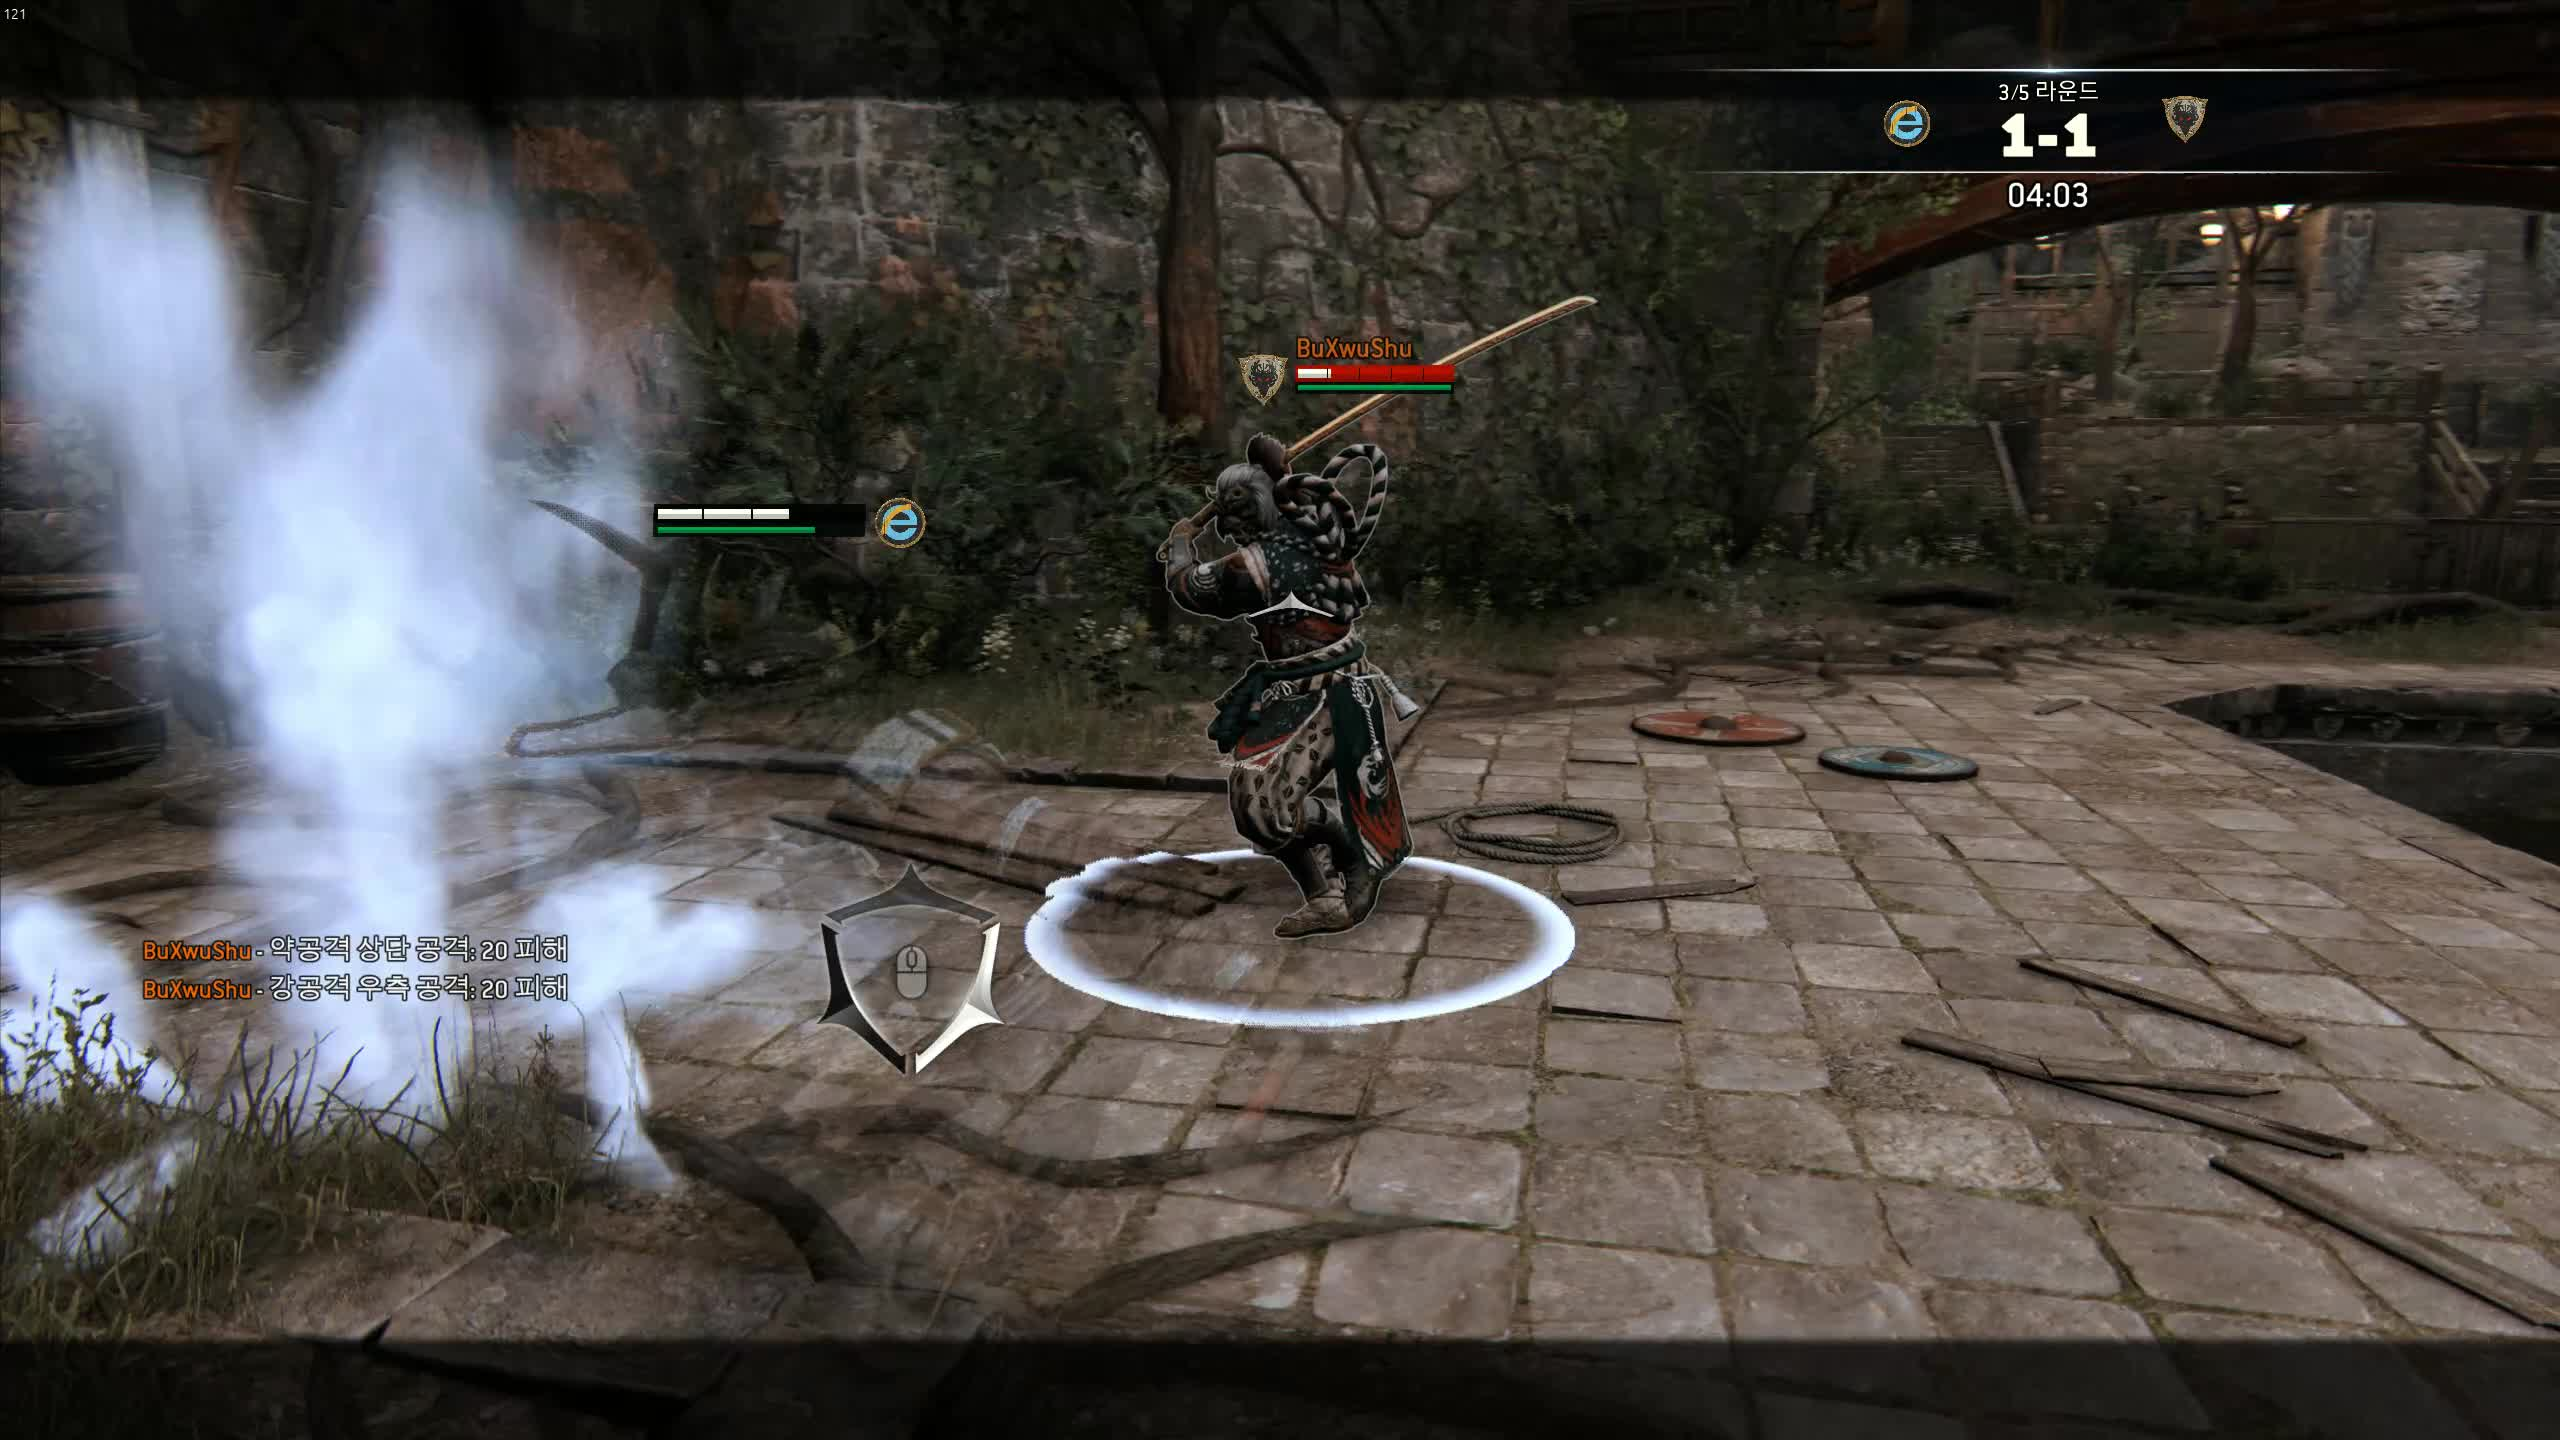 forhonor, For Honor 2019.04.11 - 00.32.37.06.DVR GIFs